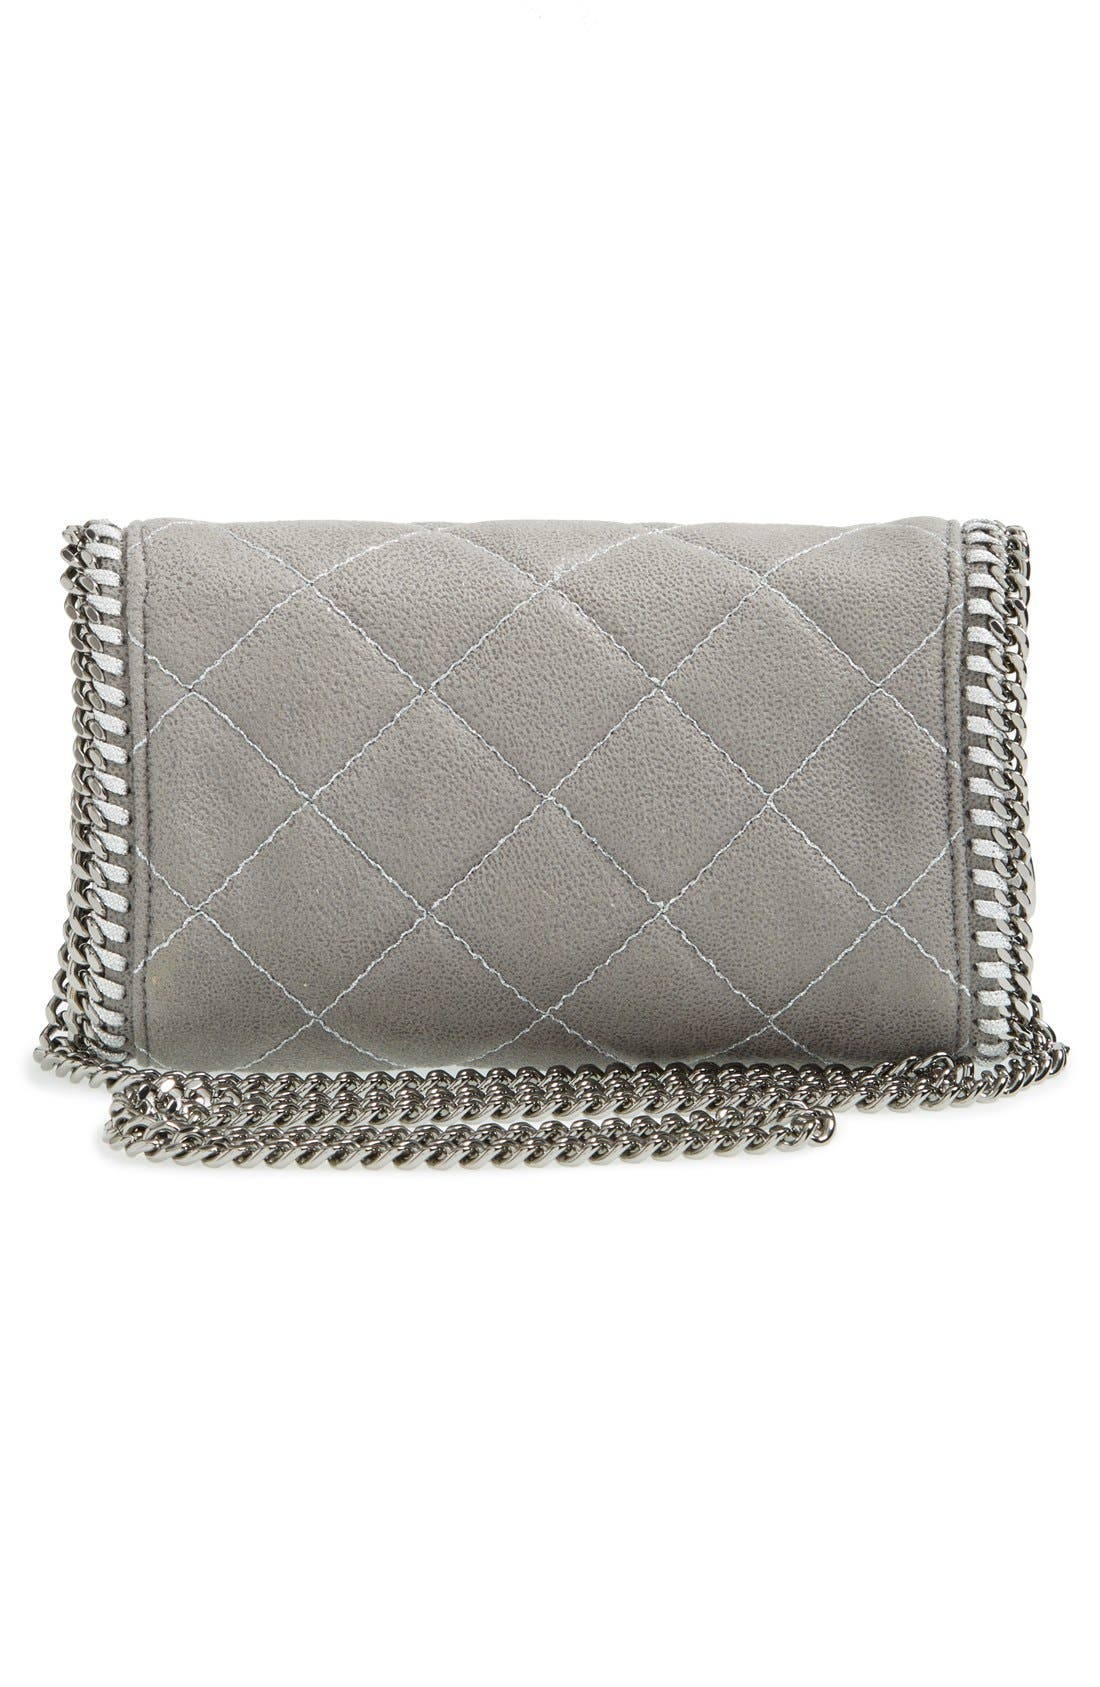 'Falabella' Quilted Faux Leather Crossbody Bag,                             Alternate thumbnail 15, color,